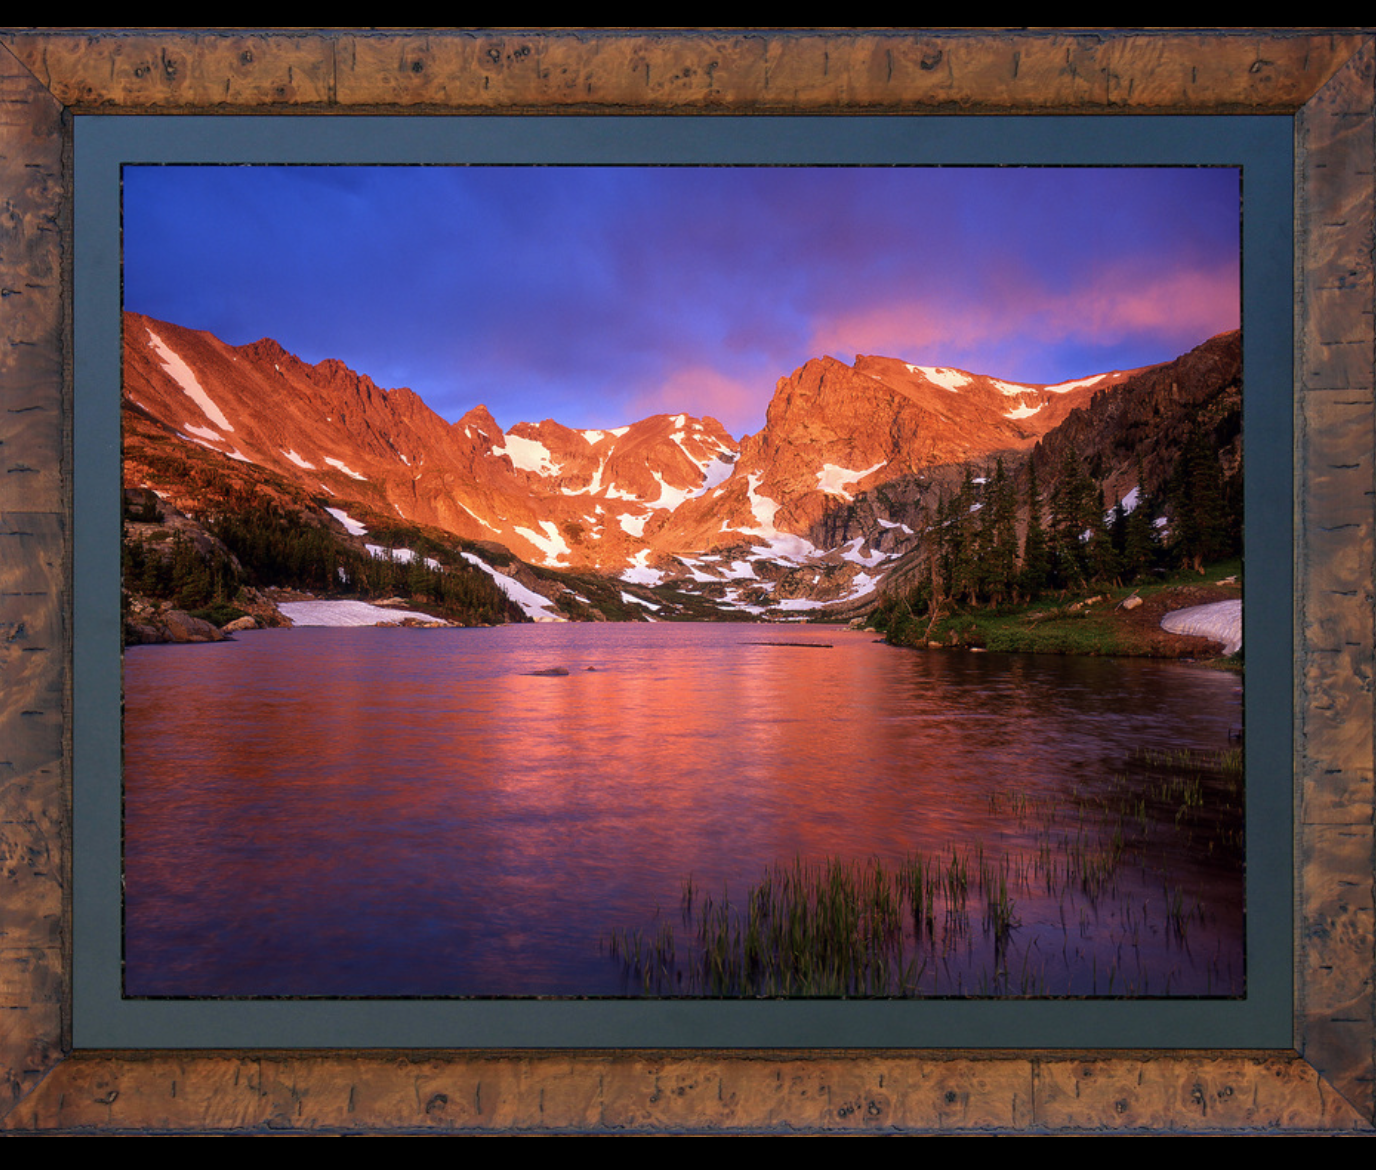 Dale Malmedal - http://www.naturescapesgallery.comLandscape photography captured primarily on film. Laminated photo plaques. Images are sealed behind a fine art UV filtering protective laminate. Mounted on poly material or MDF; framed and unframed.